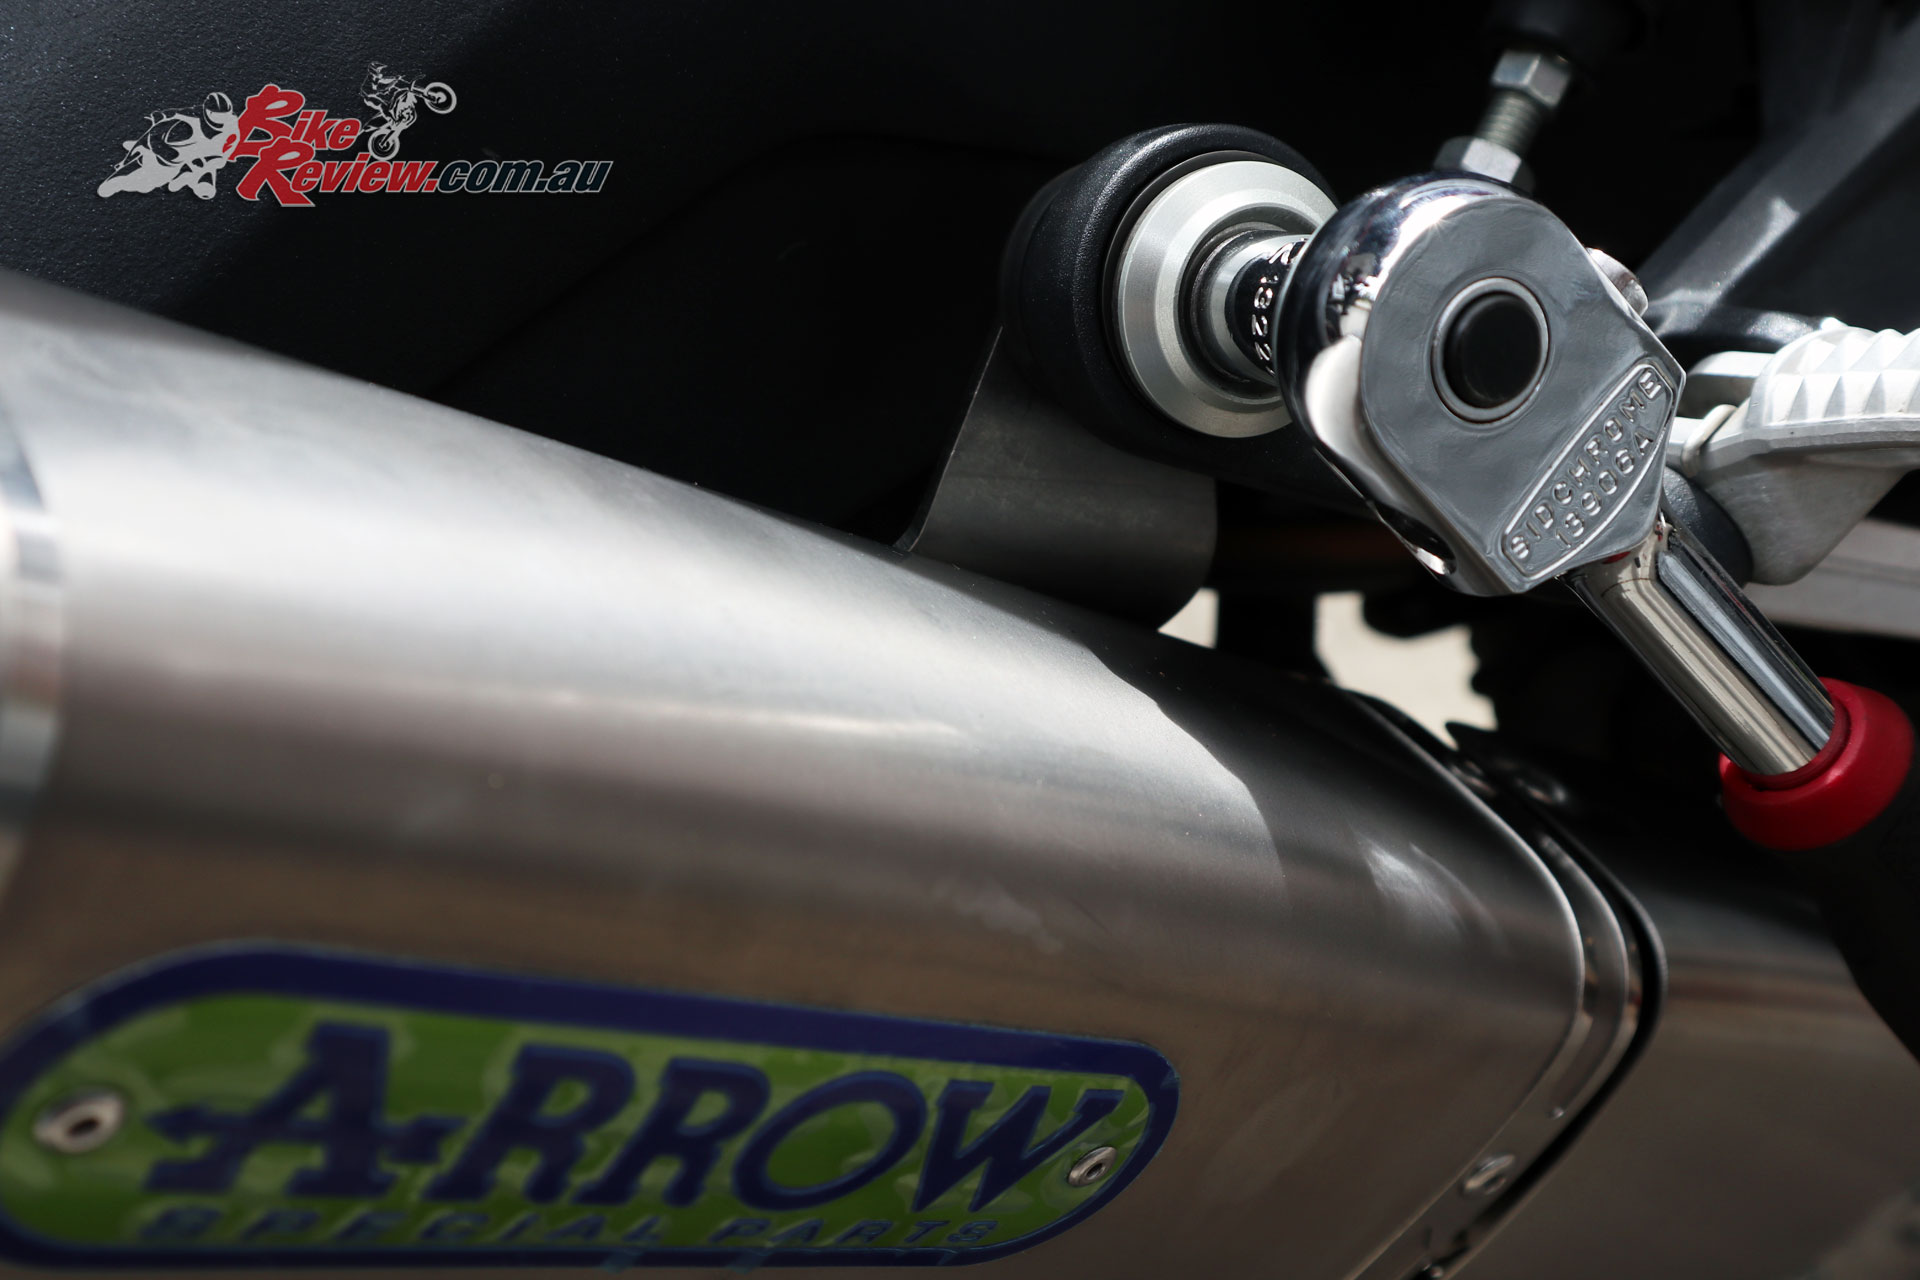 Add the bolt to the upper mounting point off the rearset, with the appropriate spacer and grommet.